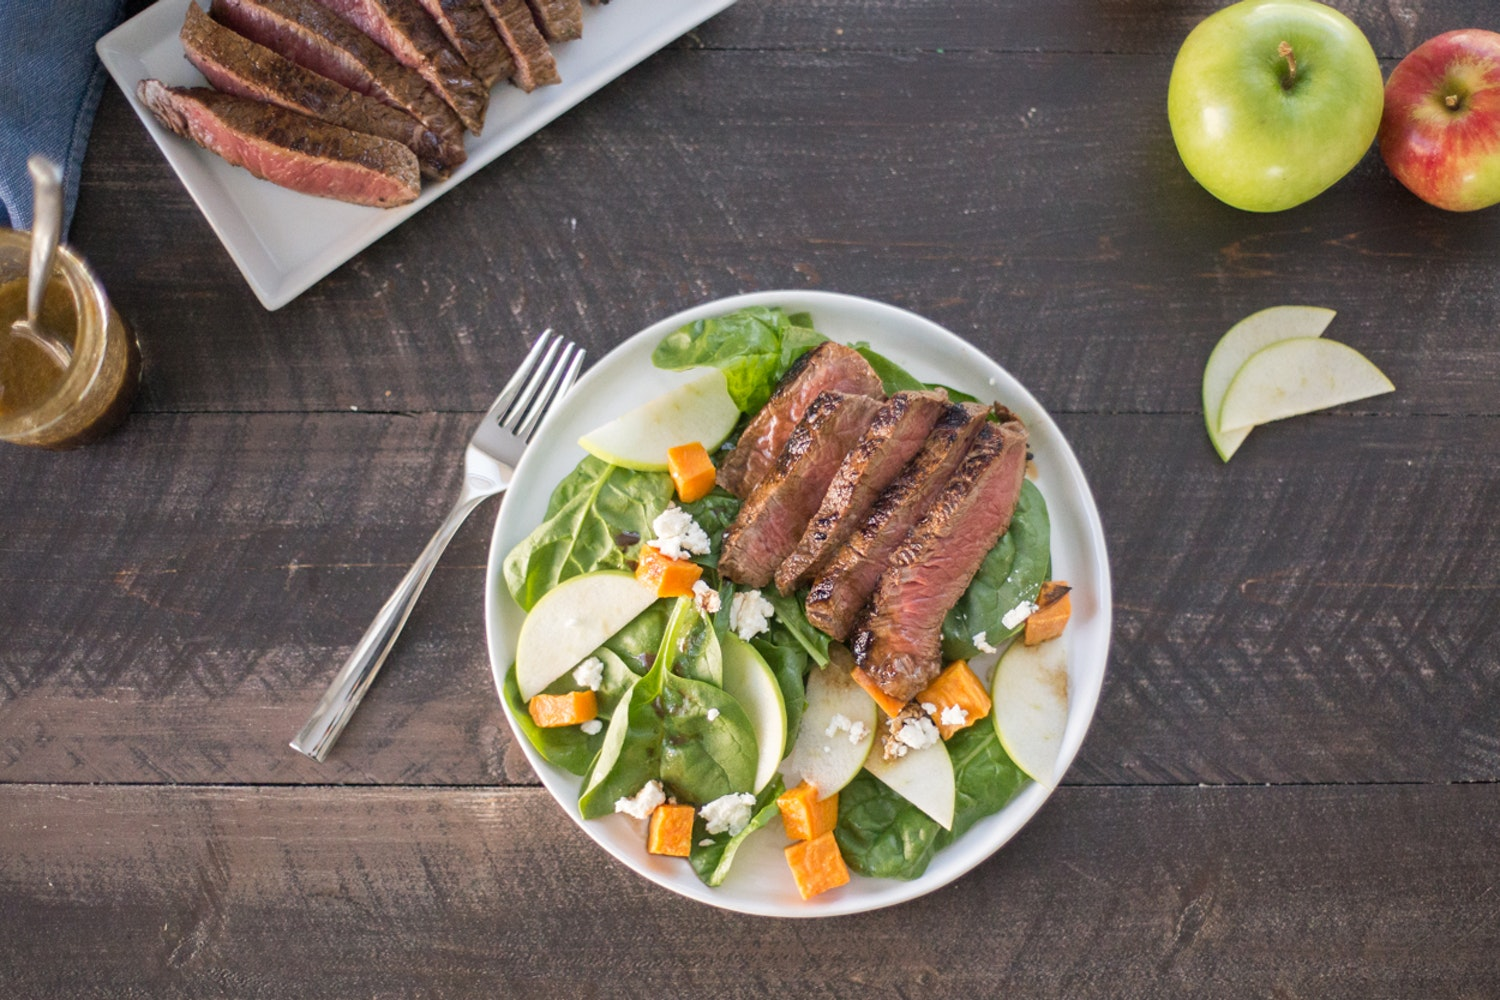 20190107 steak salad with apples nm 3.jpg?ixlib=rails 2.1